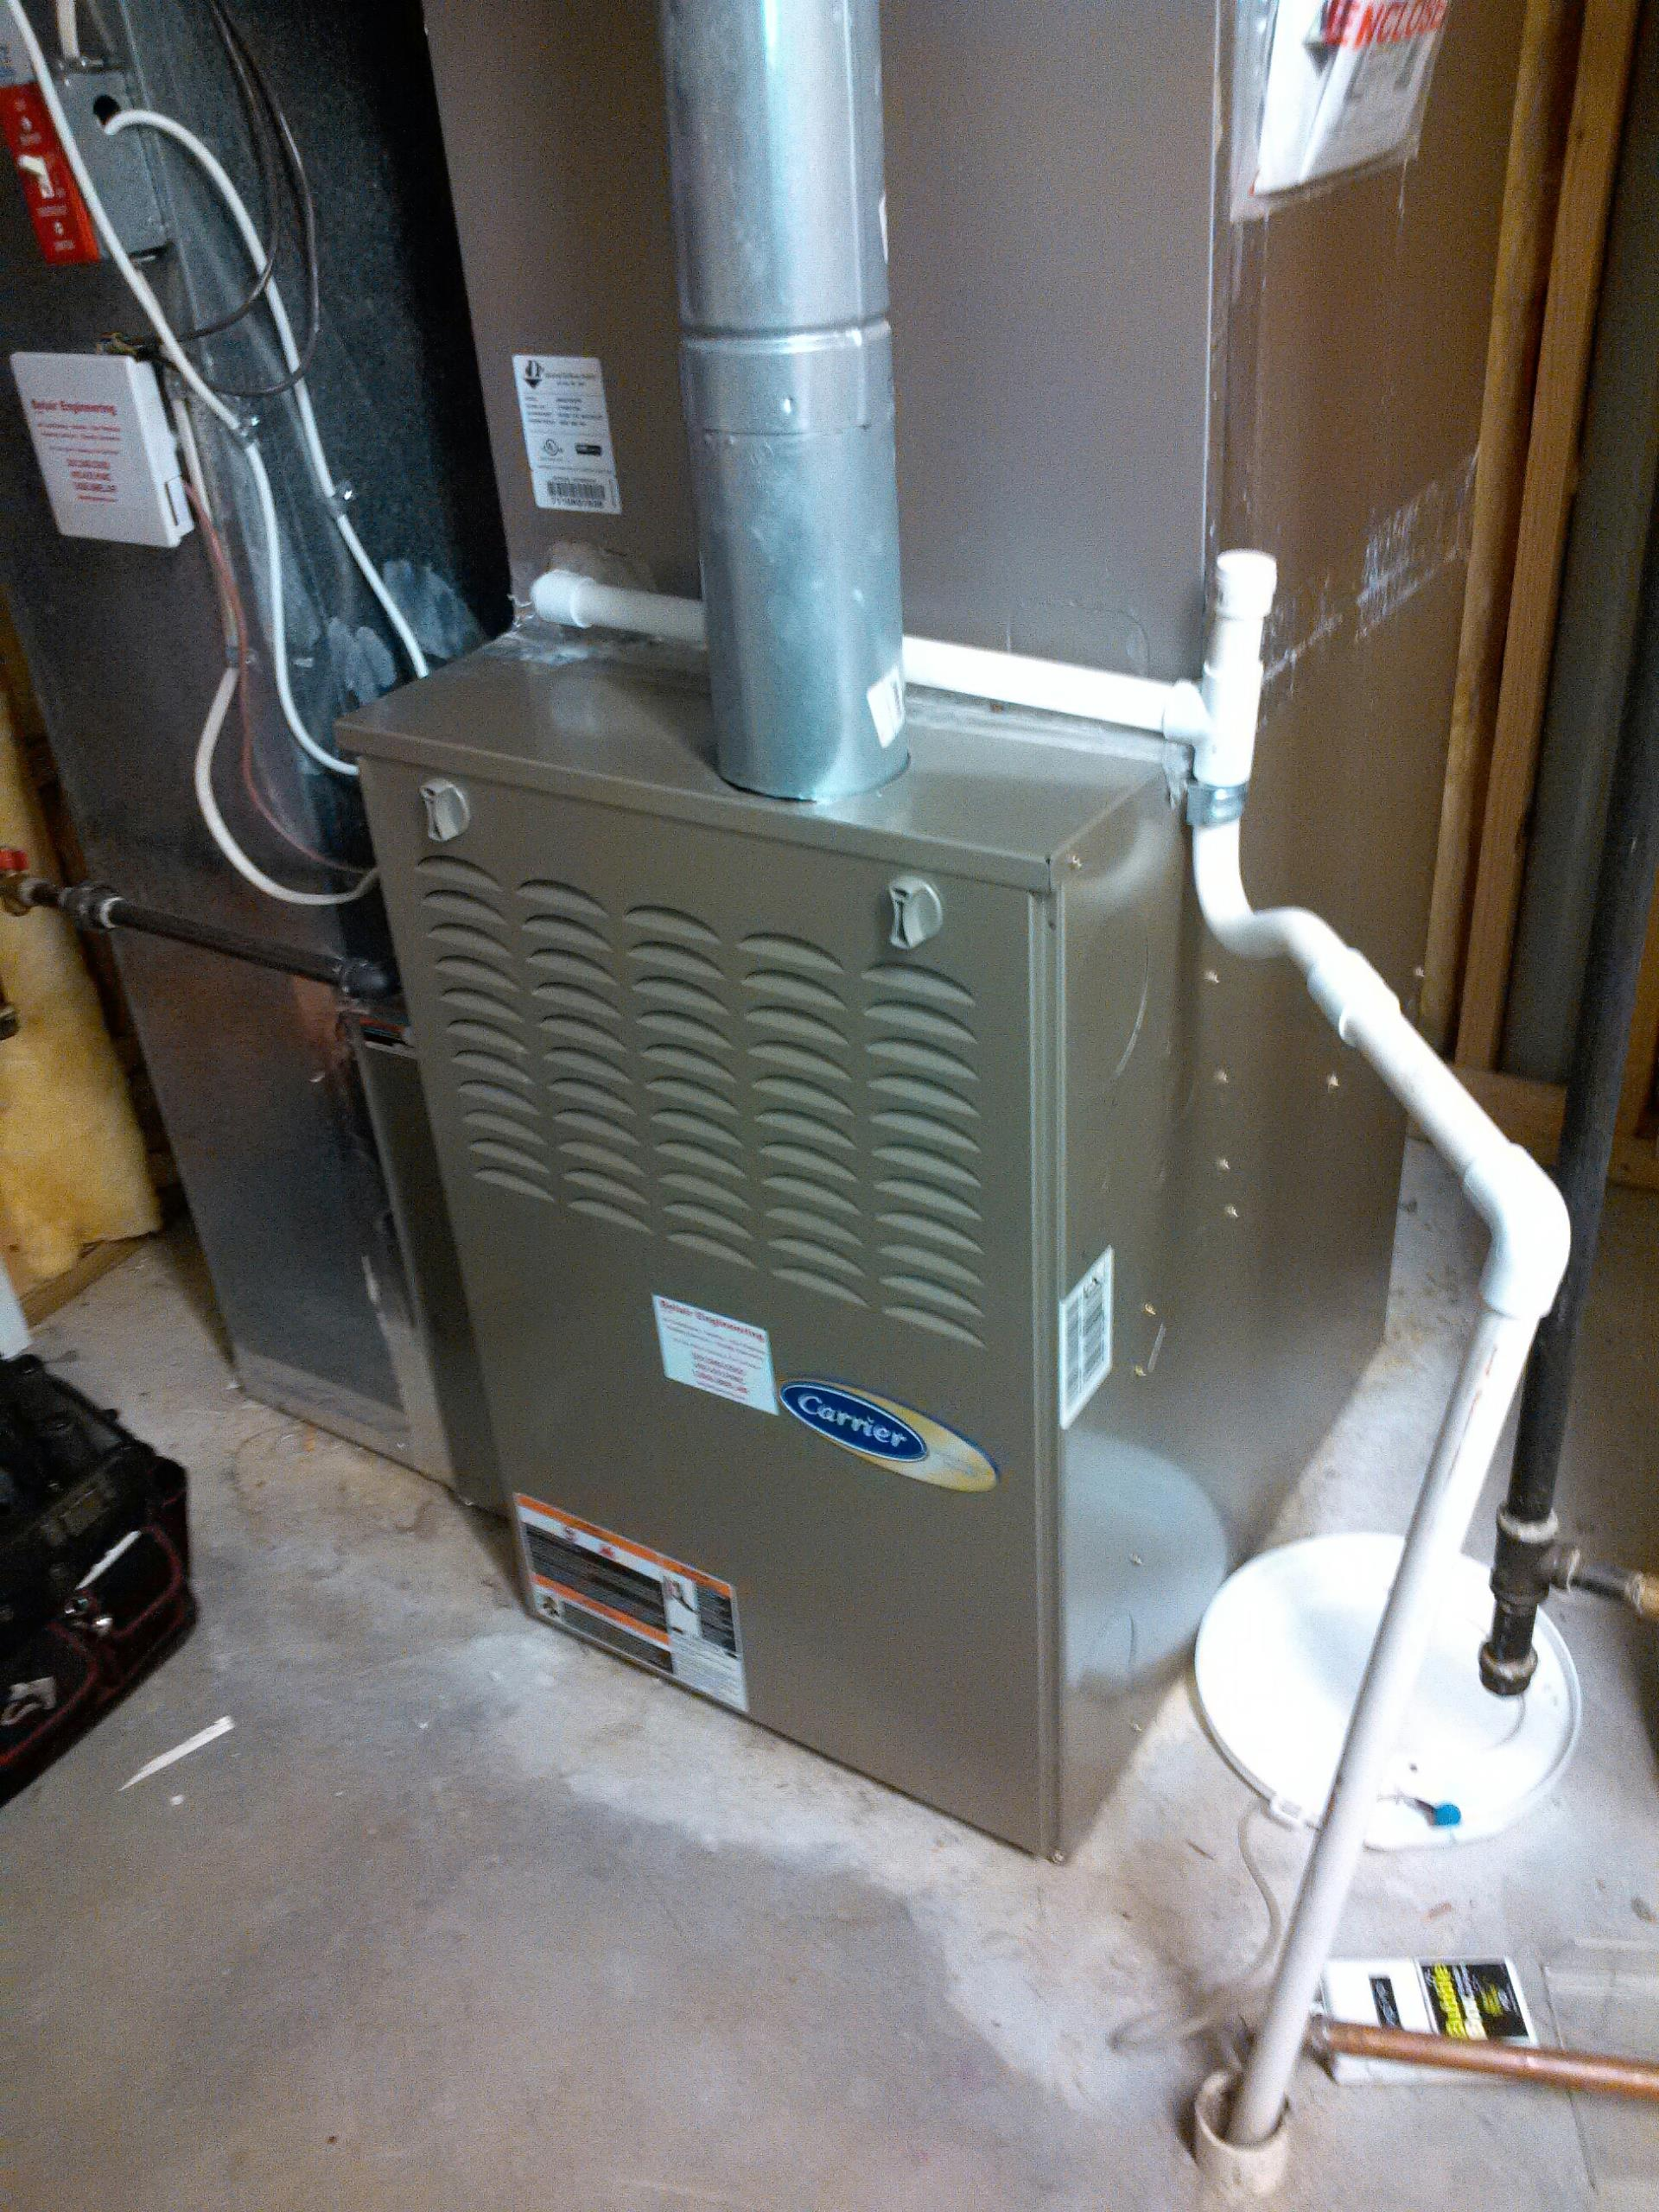 Gambrills, MD - Gambrills Maryland Carrier gas furnace repair service call.